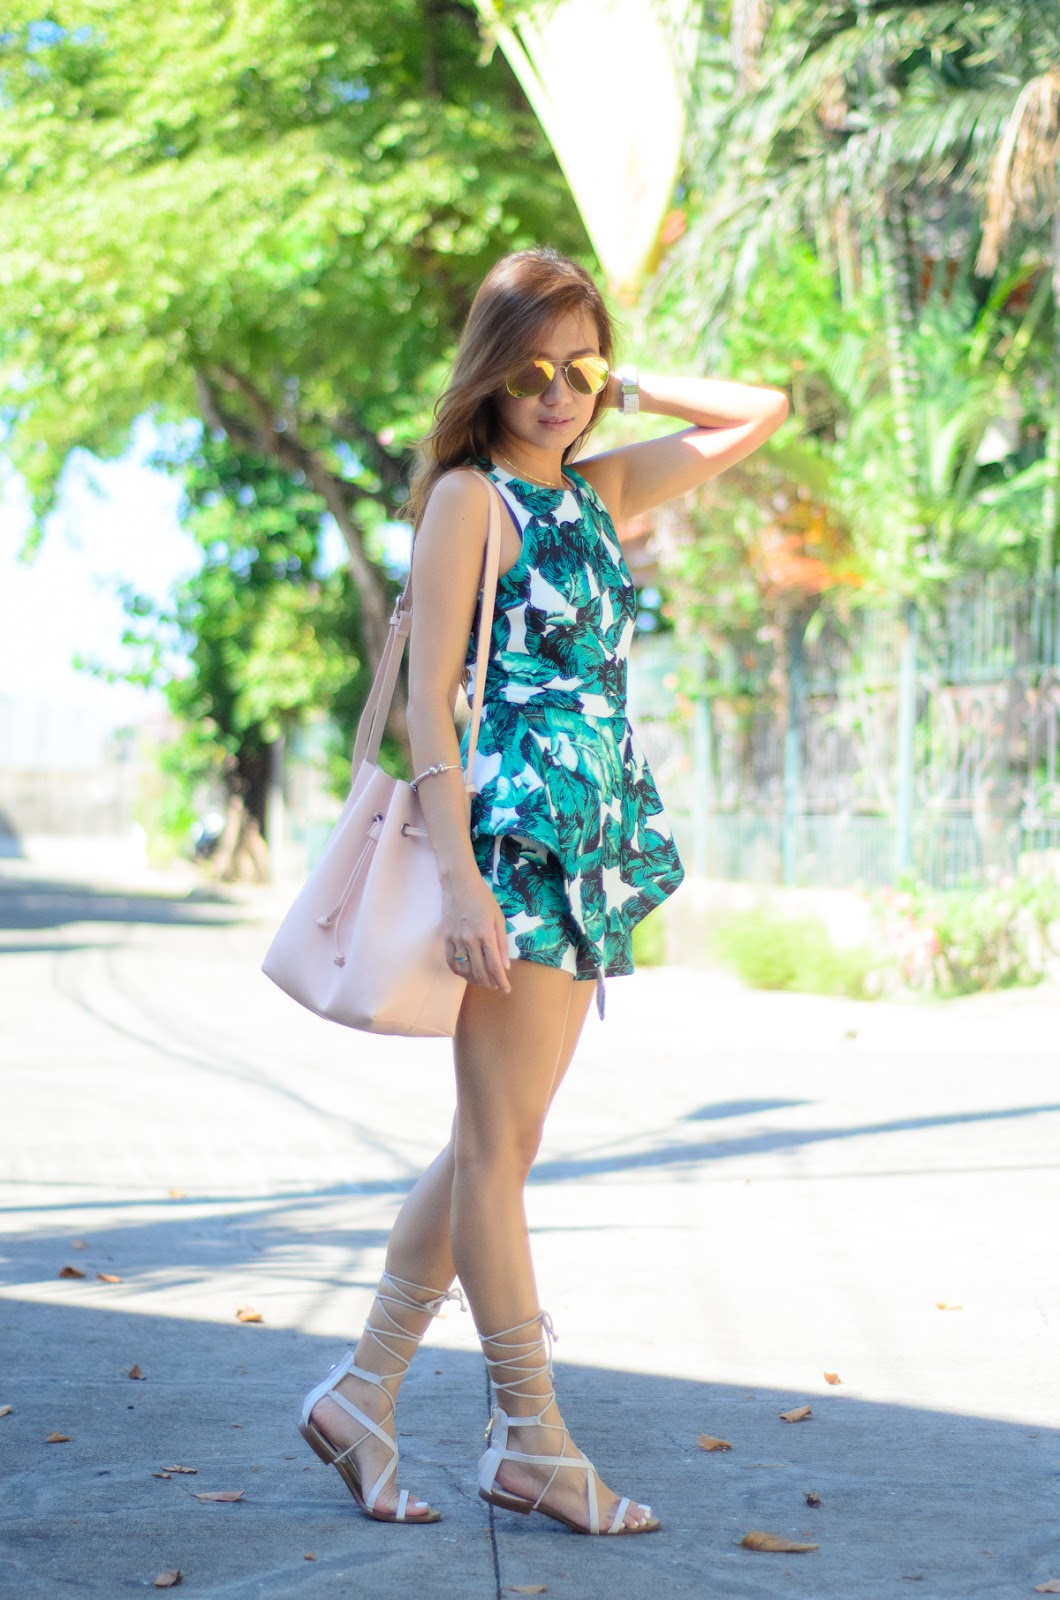 OUTFIT OF THE DAY, Cebu Fashion Bloggers, SM GTW, Romper, Cebu Bloggers, Cebu Fashion Blogger, Mango, Philippine Street Fashion,